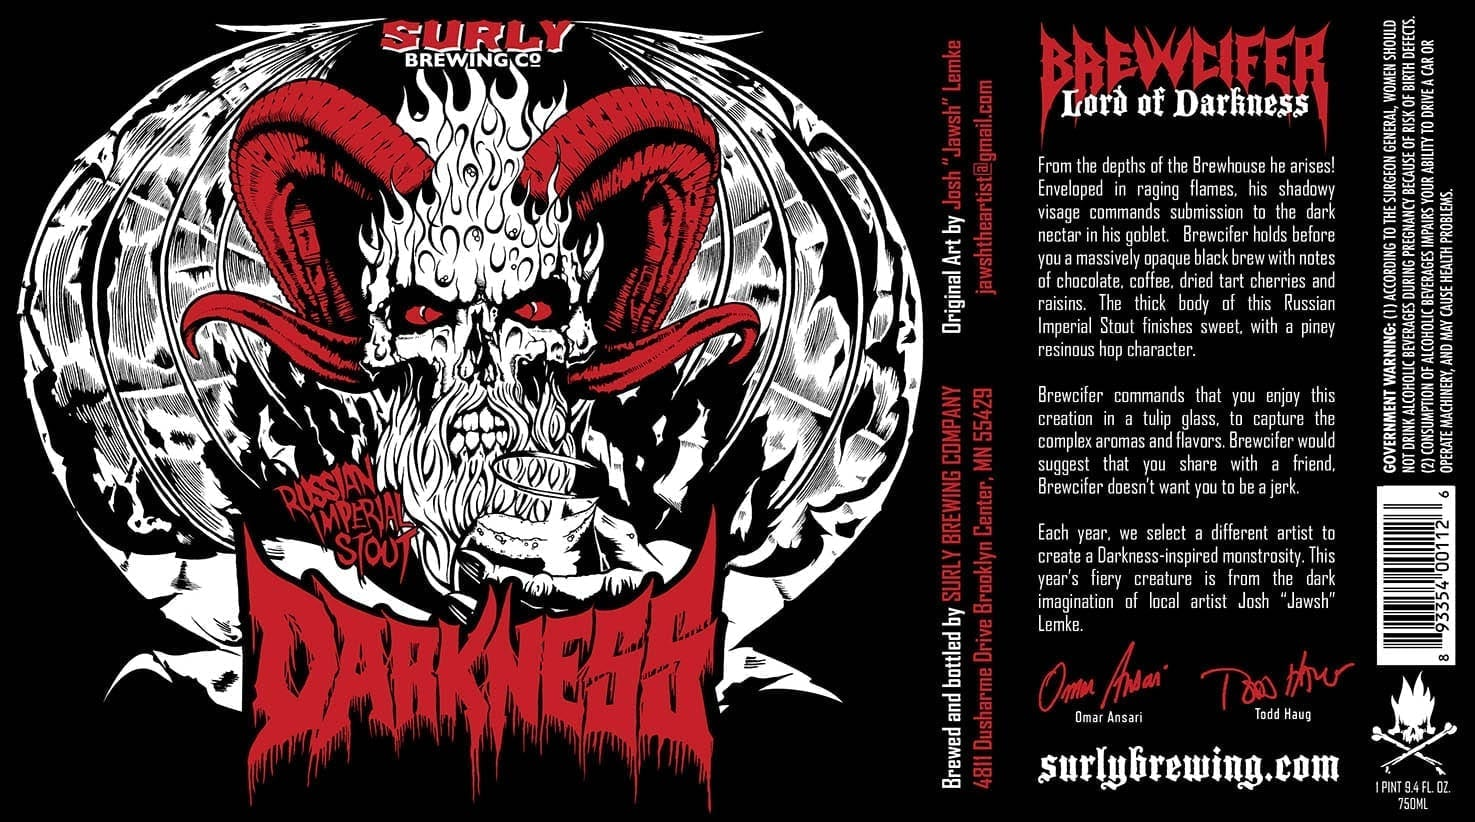 Surly Brewing Darkness 2013